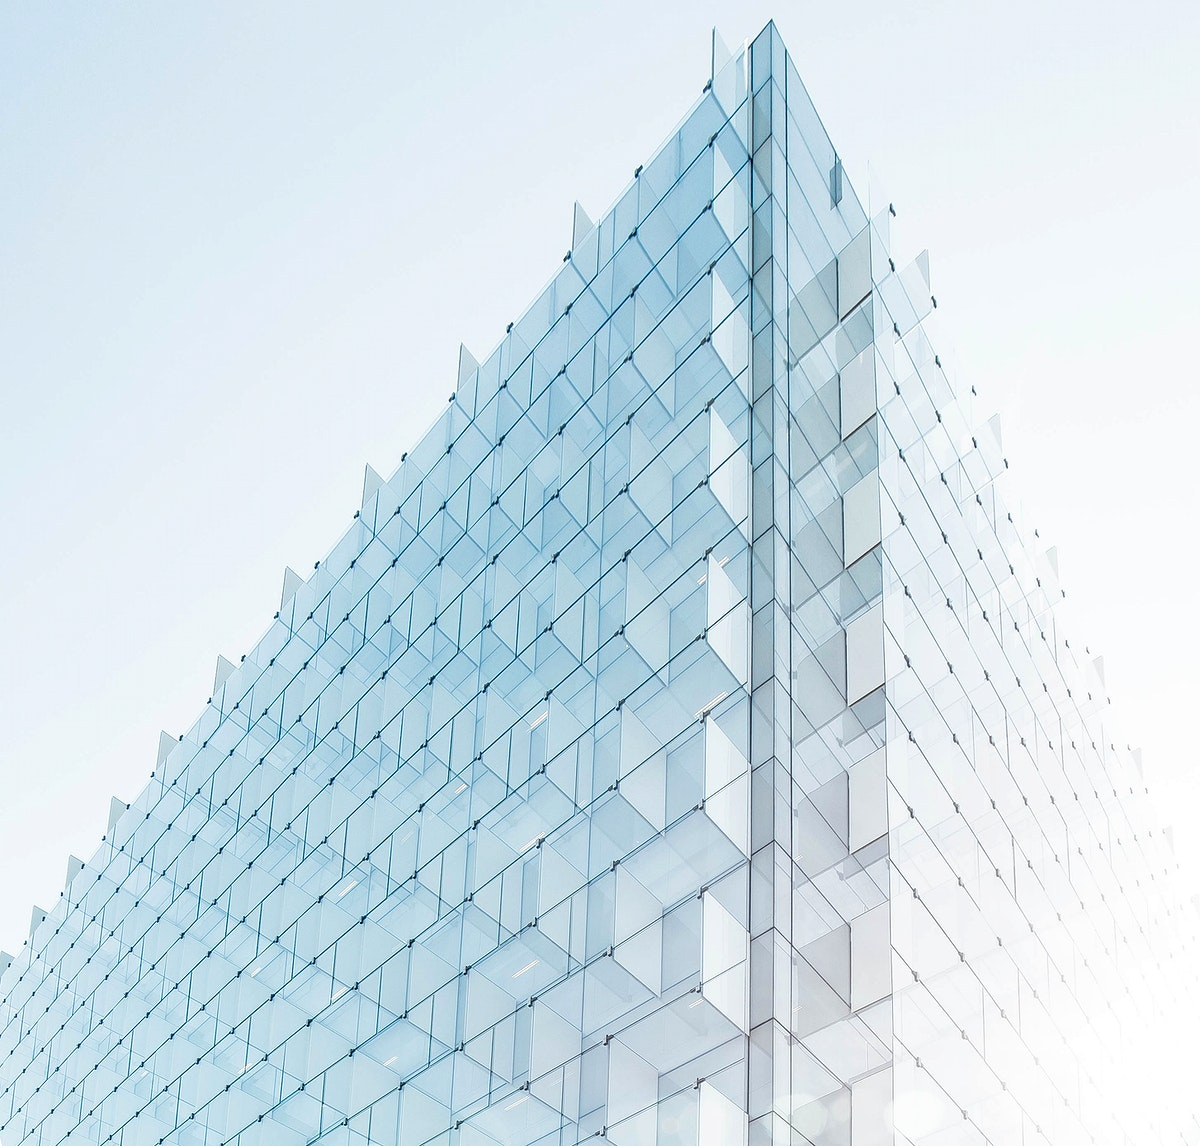 The edge of a building facade with glass plates on it in Madrid. Original public domain image from Wikimedia Commons